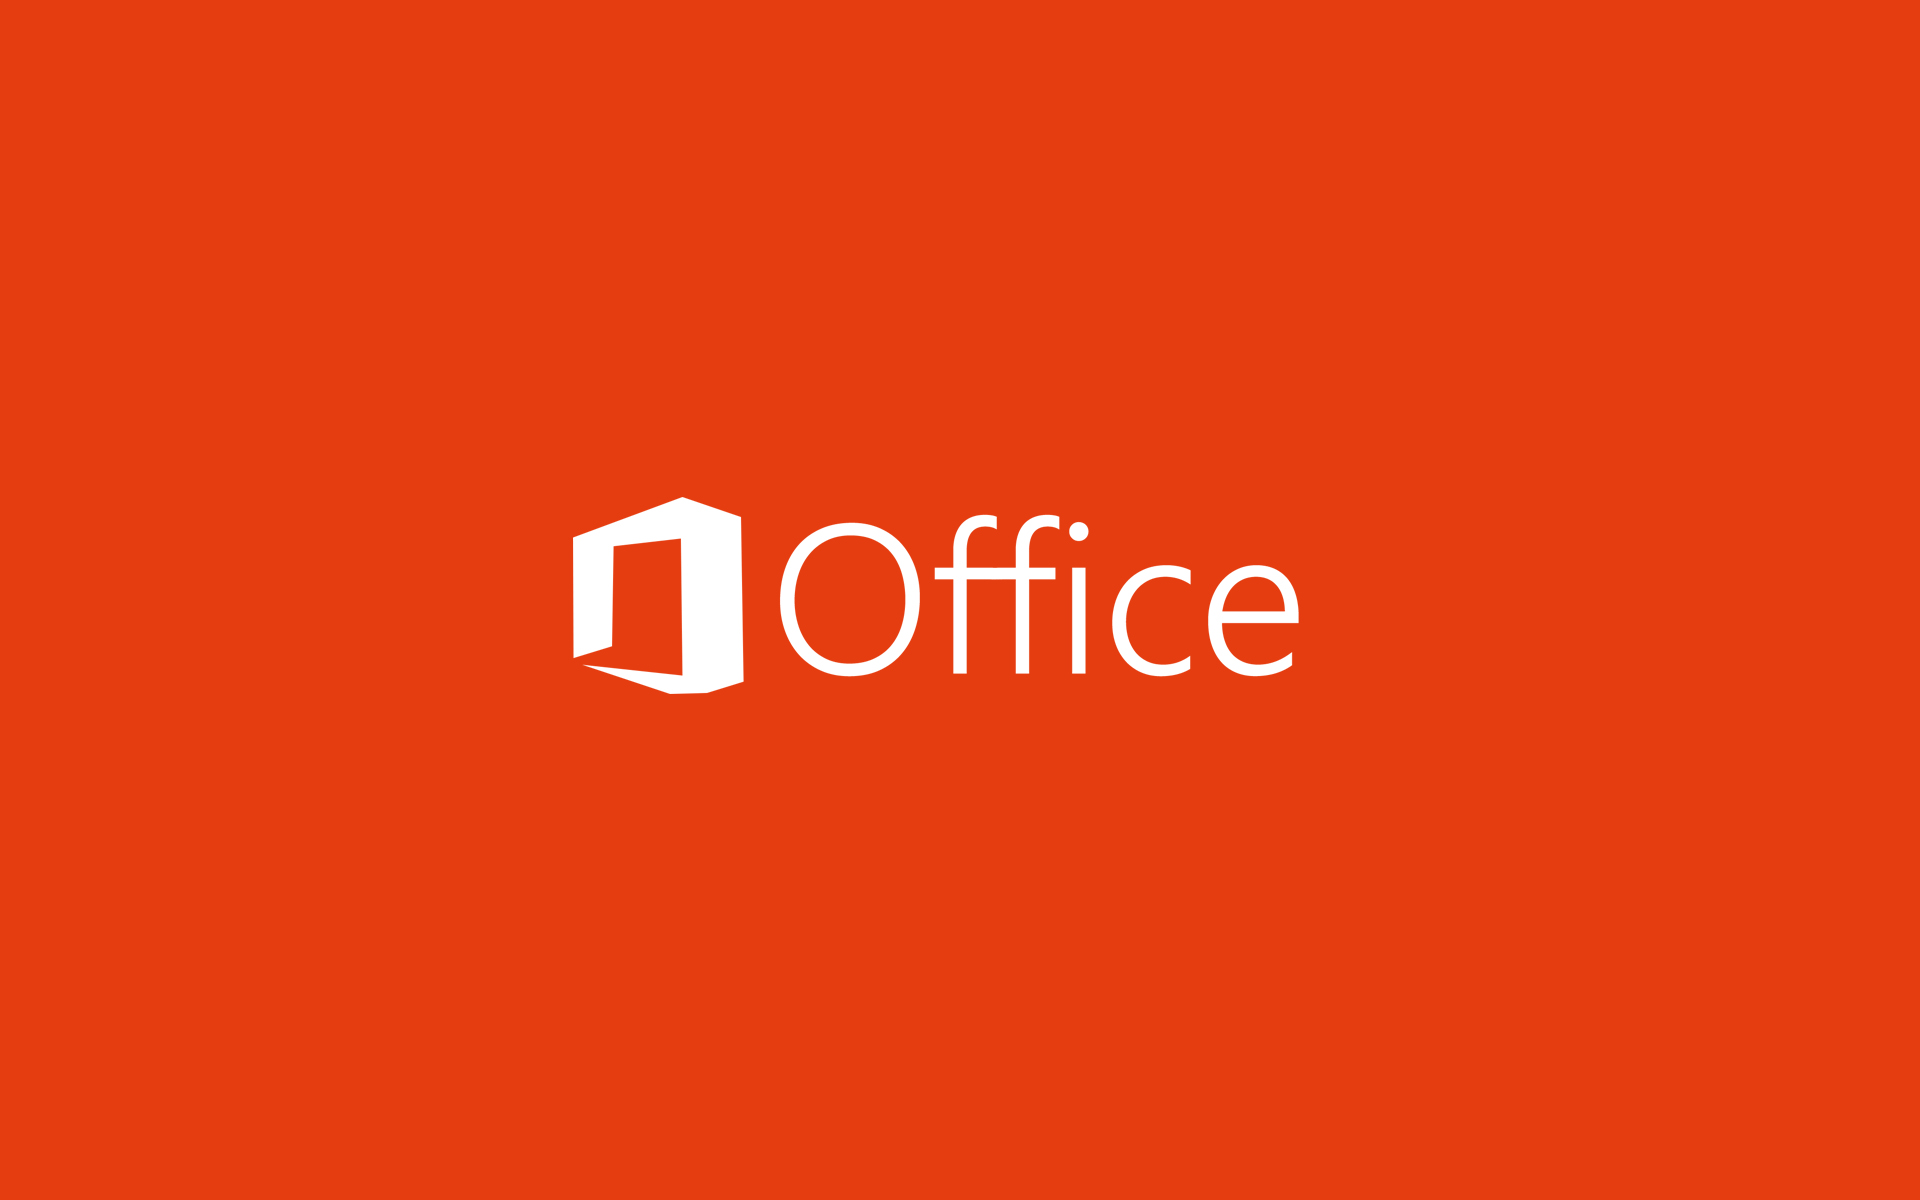 wallpapers for office. Microsoft Office 2013 Wallpapers 1920x1200 228940 For